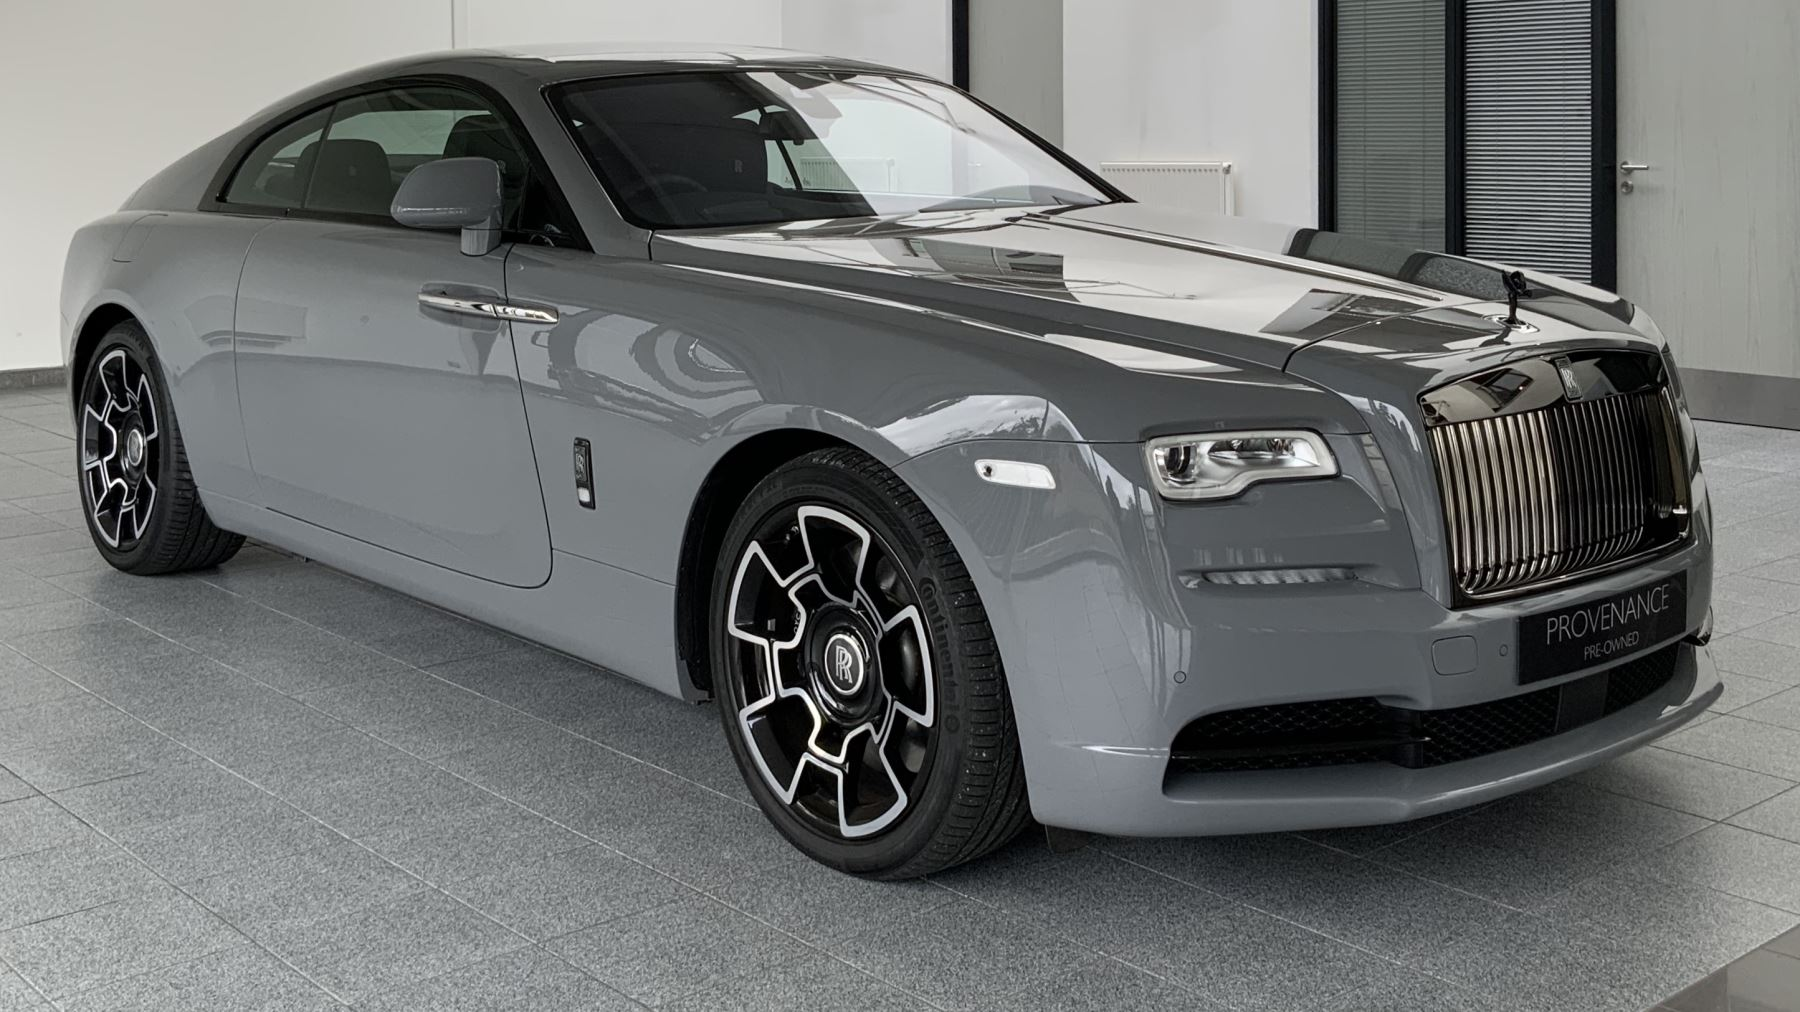 Rolls-Royce Black Badge Wraith V12 6.6 Automatic 2 door Coupe (2019) image